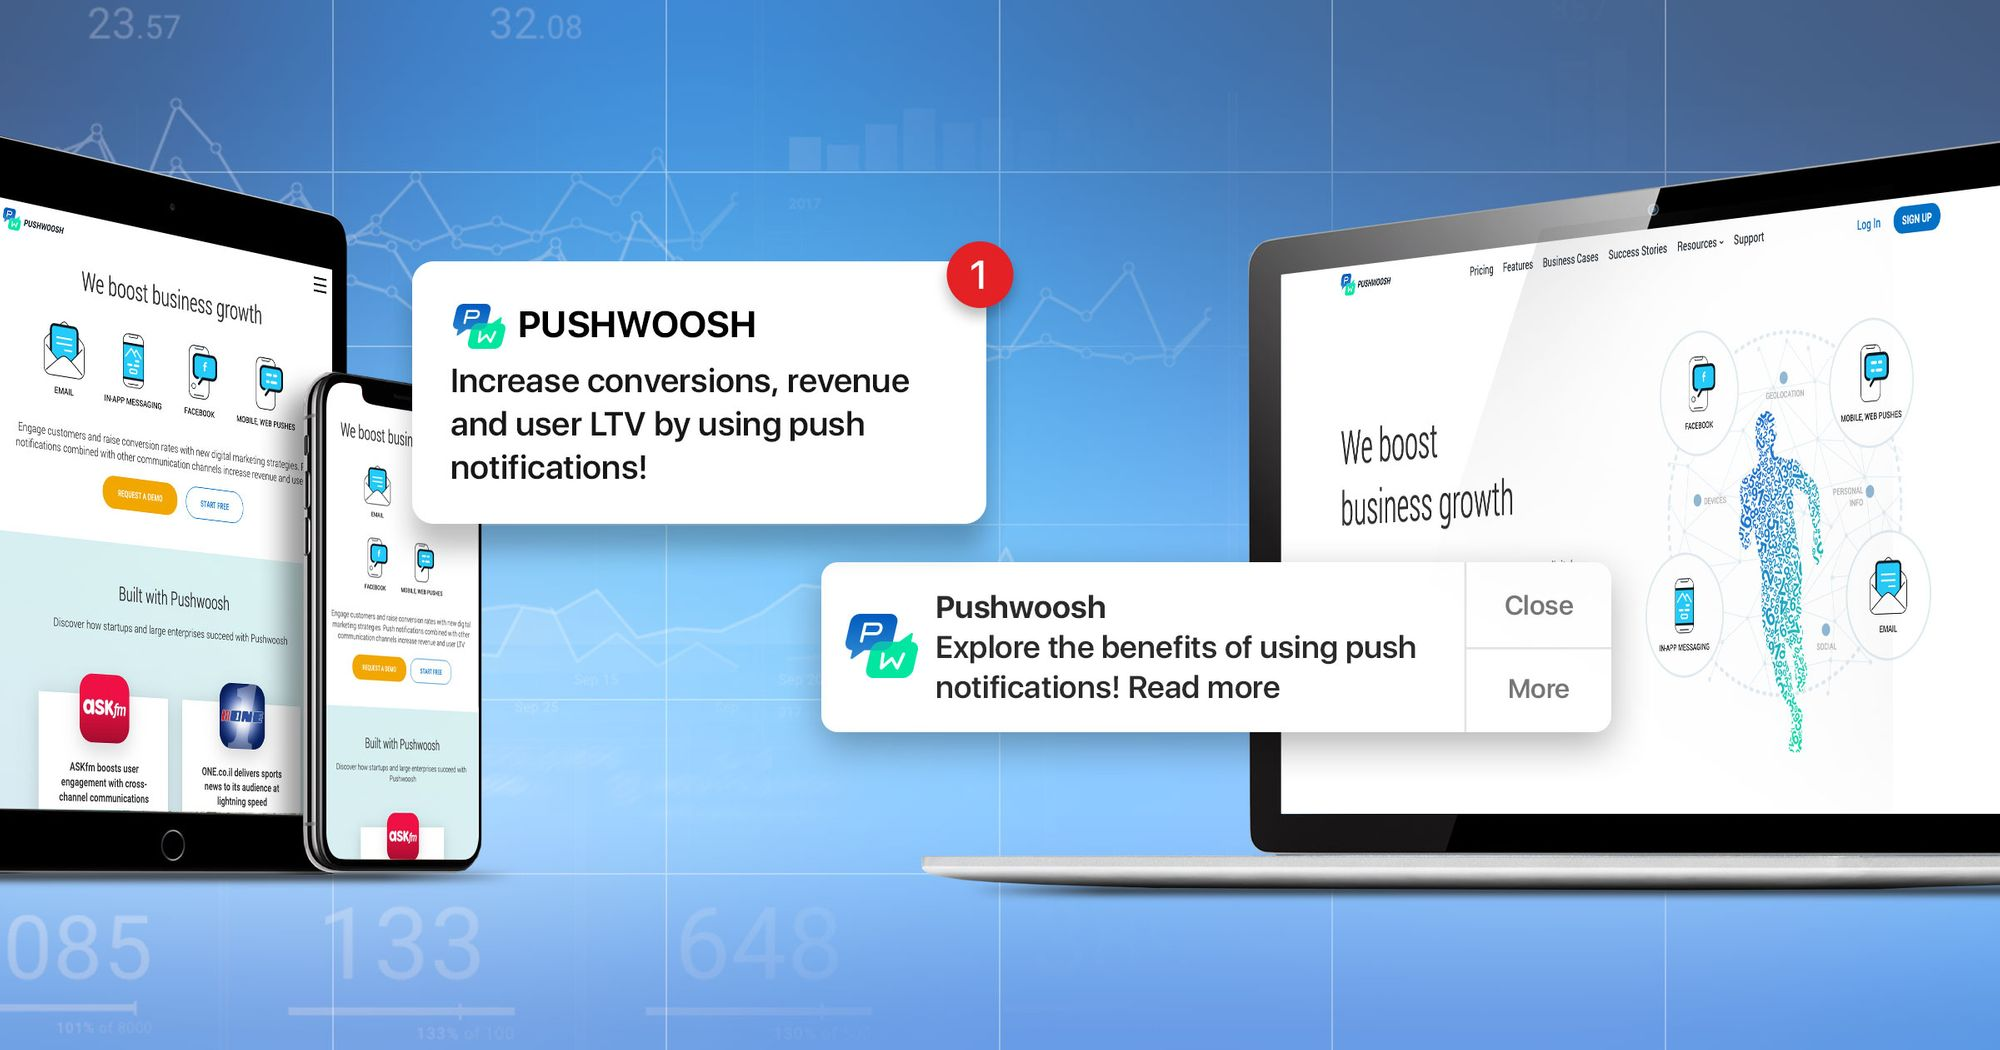 The benefits of push notifications marketing